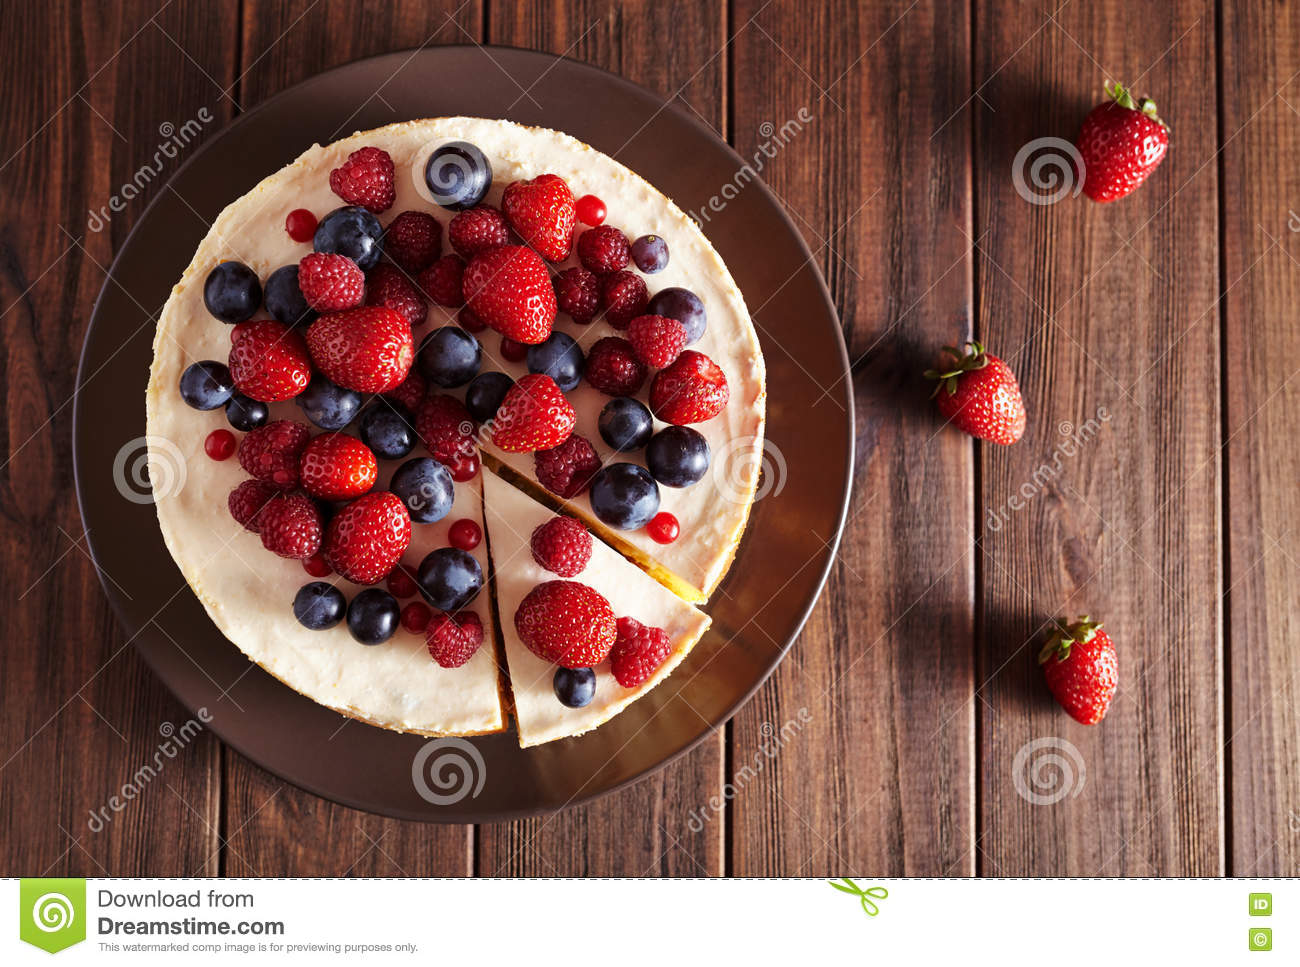 Top viev. Delicious Homemade creamy mascarpone New York Cheesecake with berries on dark wooden table. Close up.